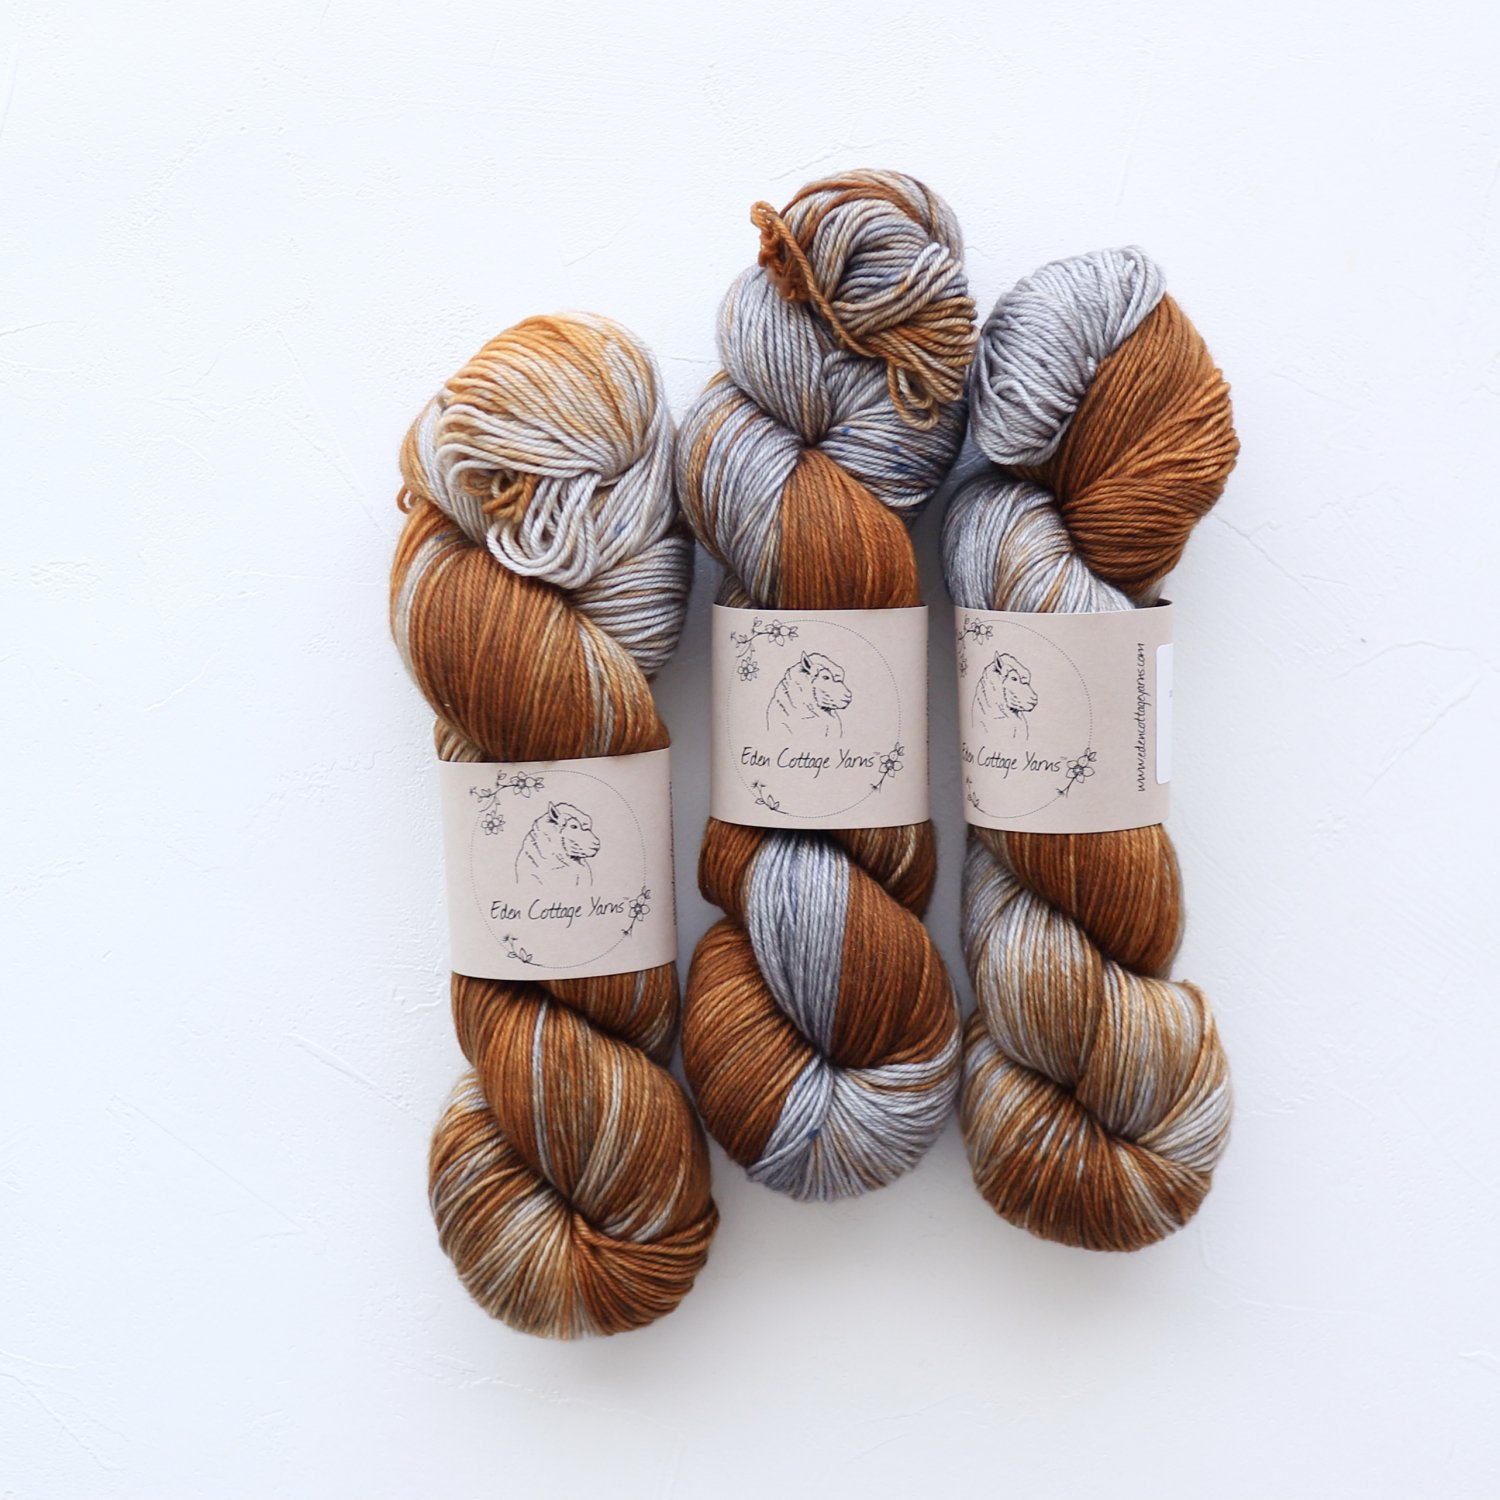 【Eden Cottage Yarns】<br>Pendle 4ply<br>Rusted Watering Can